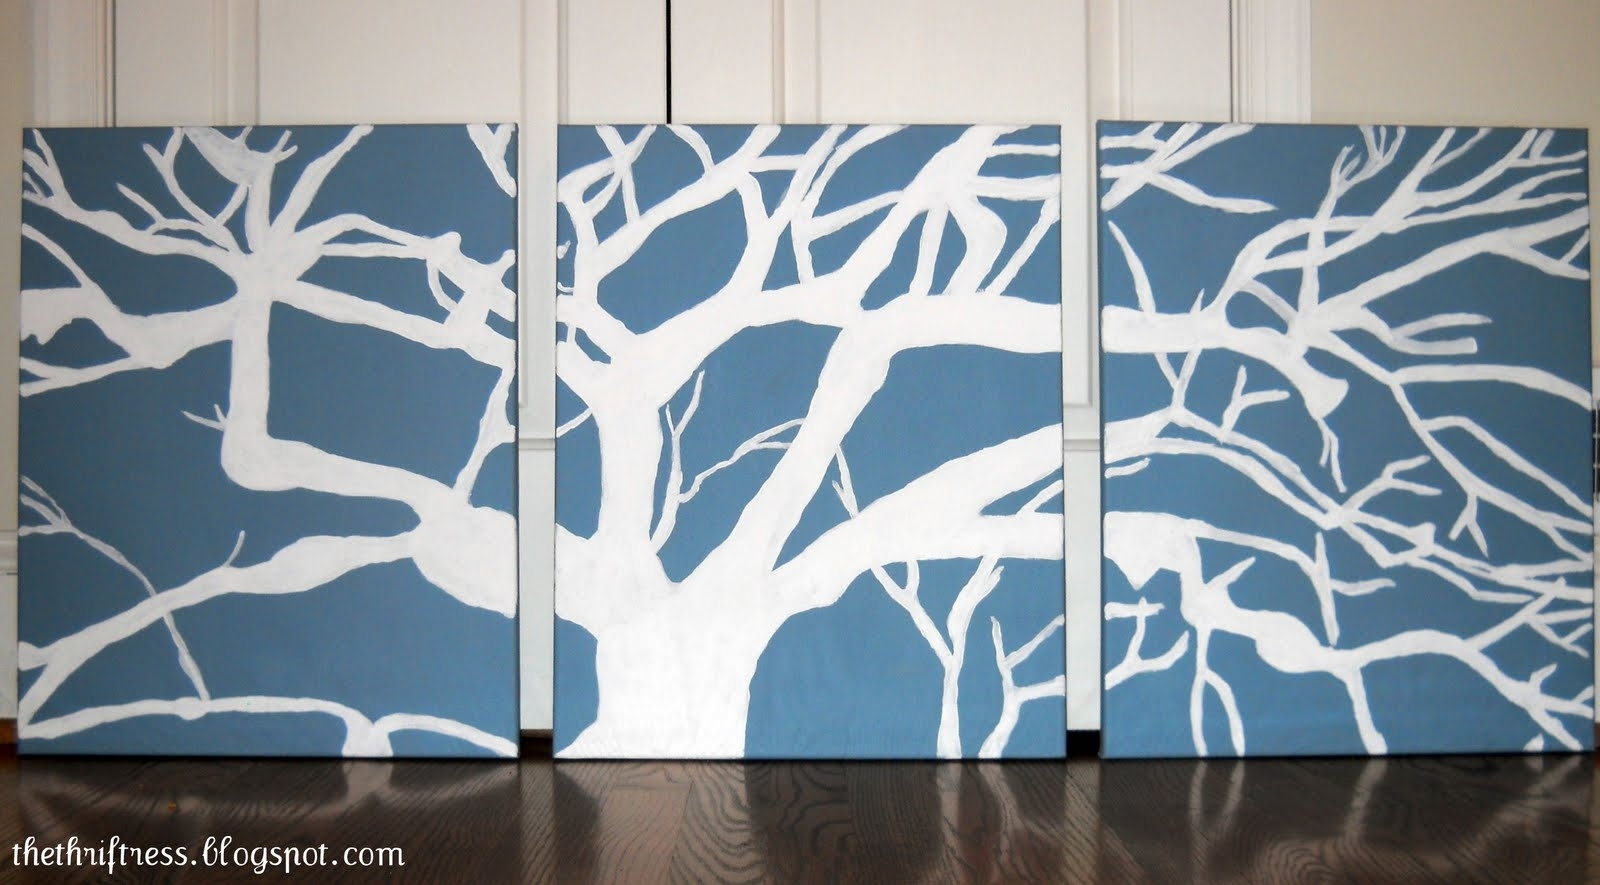 Diy Wall Art Stencils Paint Fabric – Dma Homes | #37854 Intended For Most Up To Date Diy Large Fabric Wall Art (View 8 of 15)